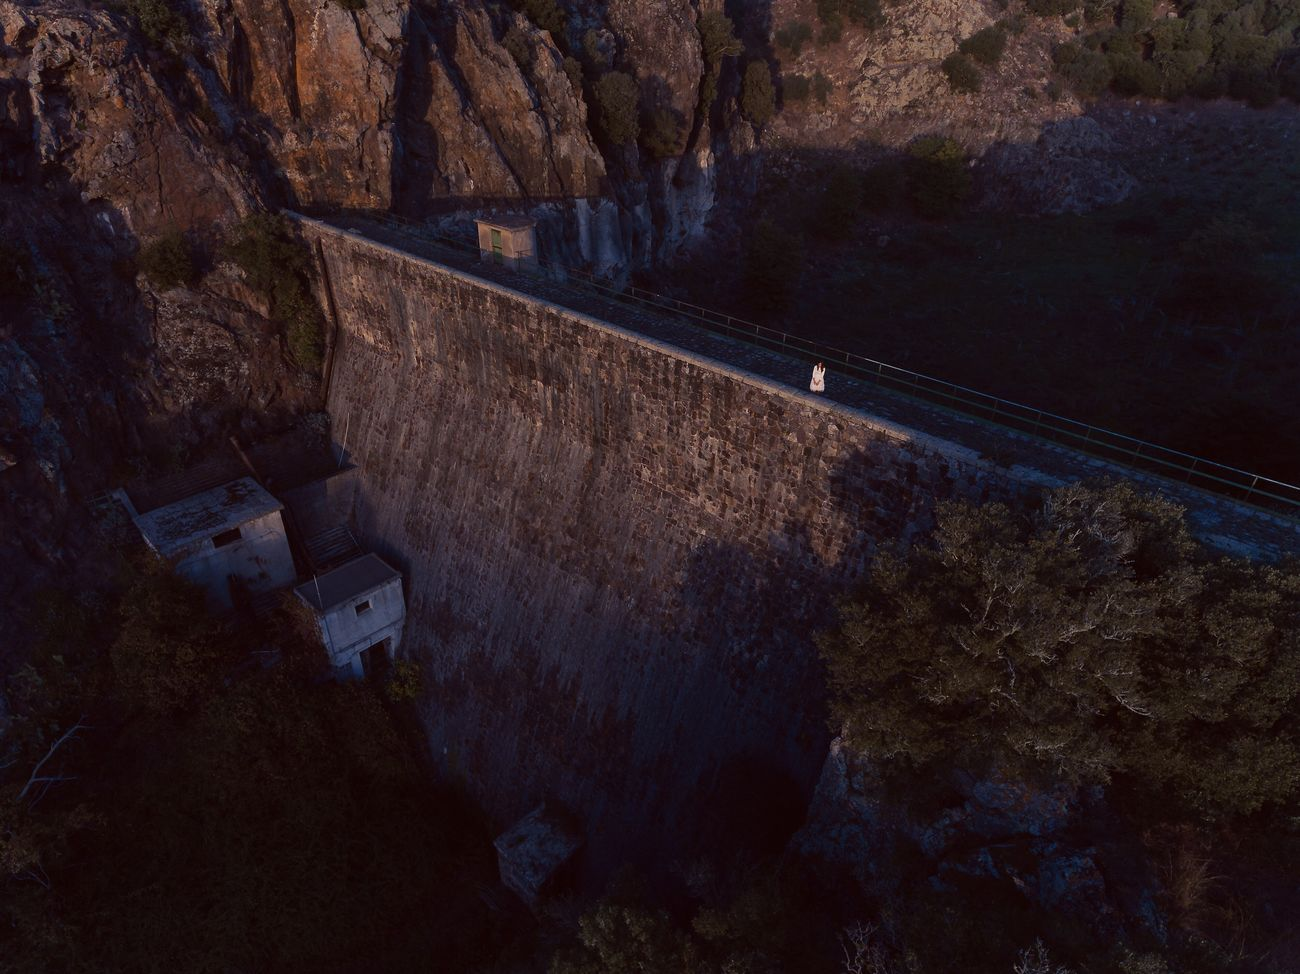 Perspective of an end. Marta, 2016. Dam End Sunset Flying High Adventure Winter Landscape Abandoned Abandoned Places Earth EyeEm Nature Lover Portrait EyeEmNewHere Drone  Dronephotography Sardegna EyeEm Best Shots EyeEm Gallery Isolated Portrait Of A Woman Outdoors Flying High EyeEmNewHere